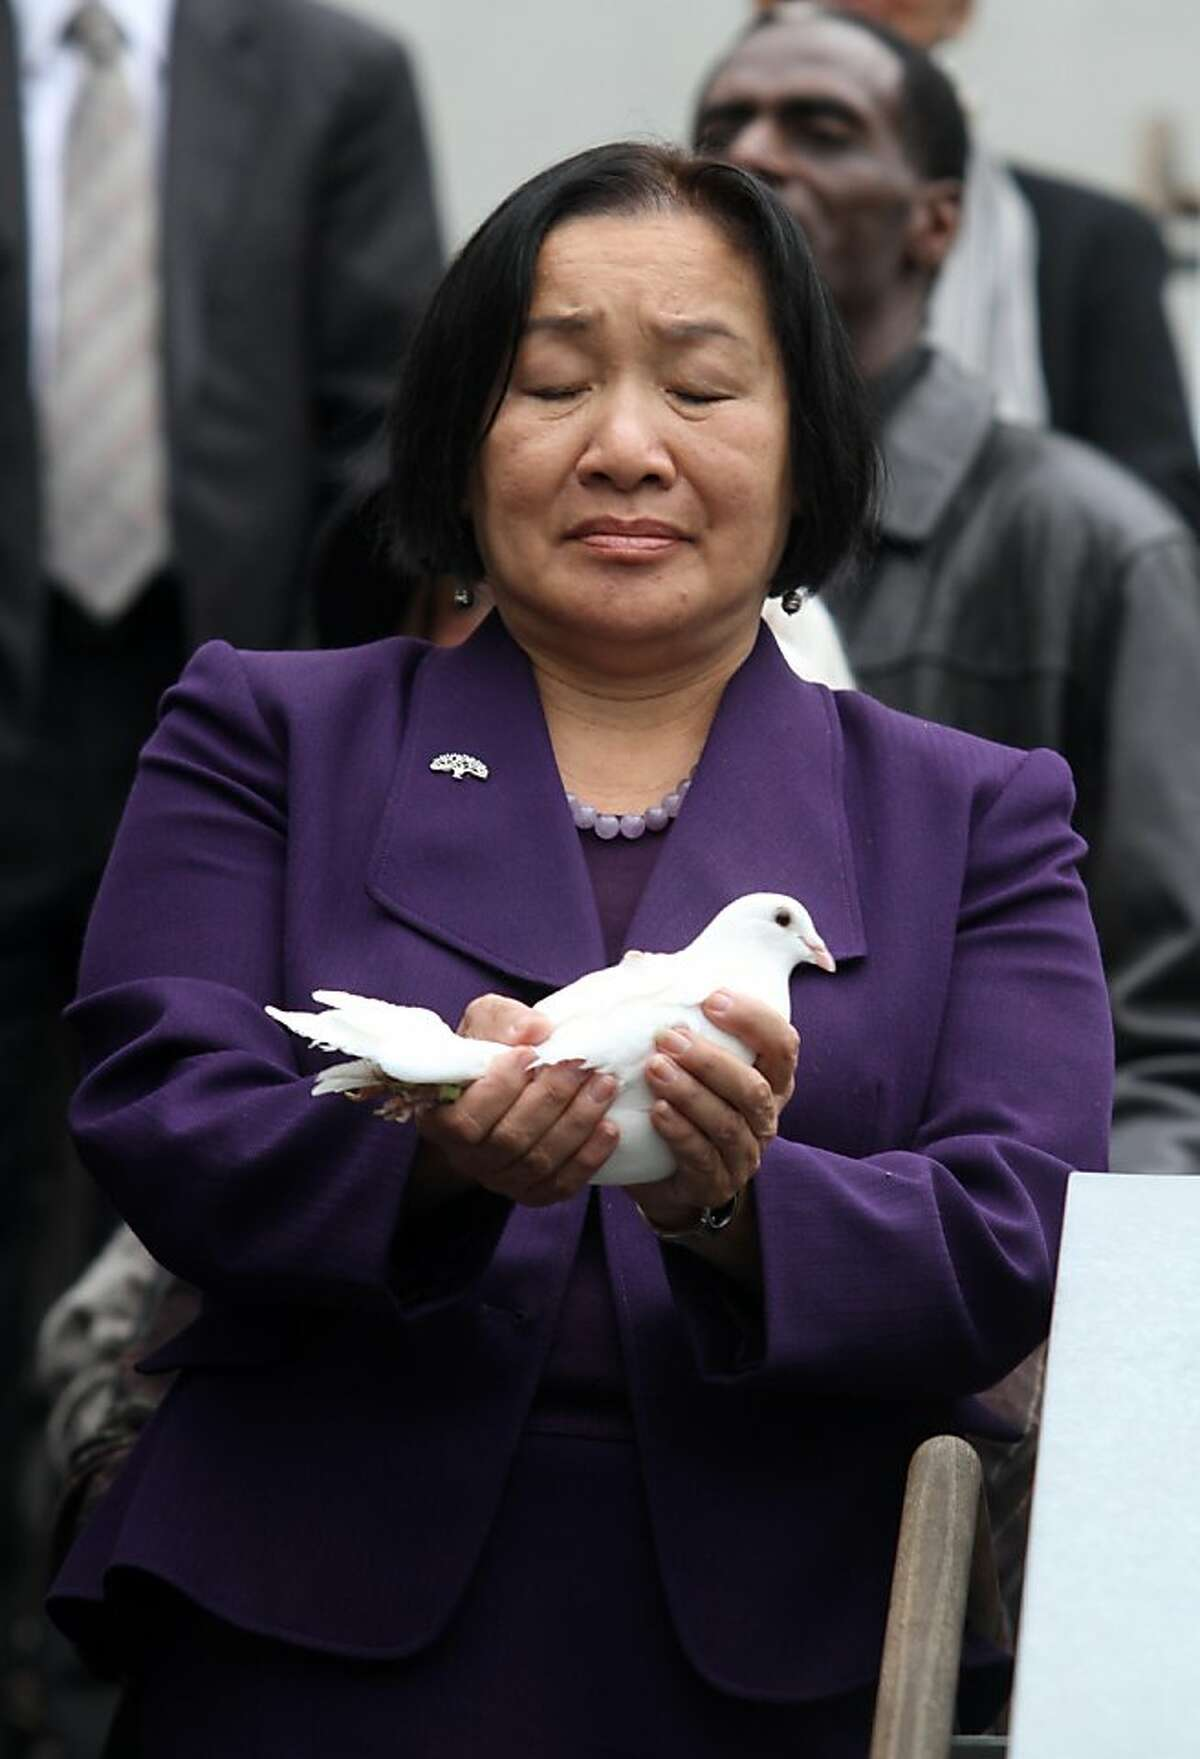 Mayor Jean Quan holds a dove to release at the Northern California Interreligious Conference on Friday, Nov. 11, 2011 in Oakland Calif.